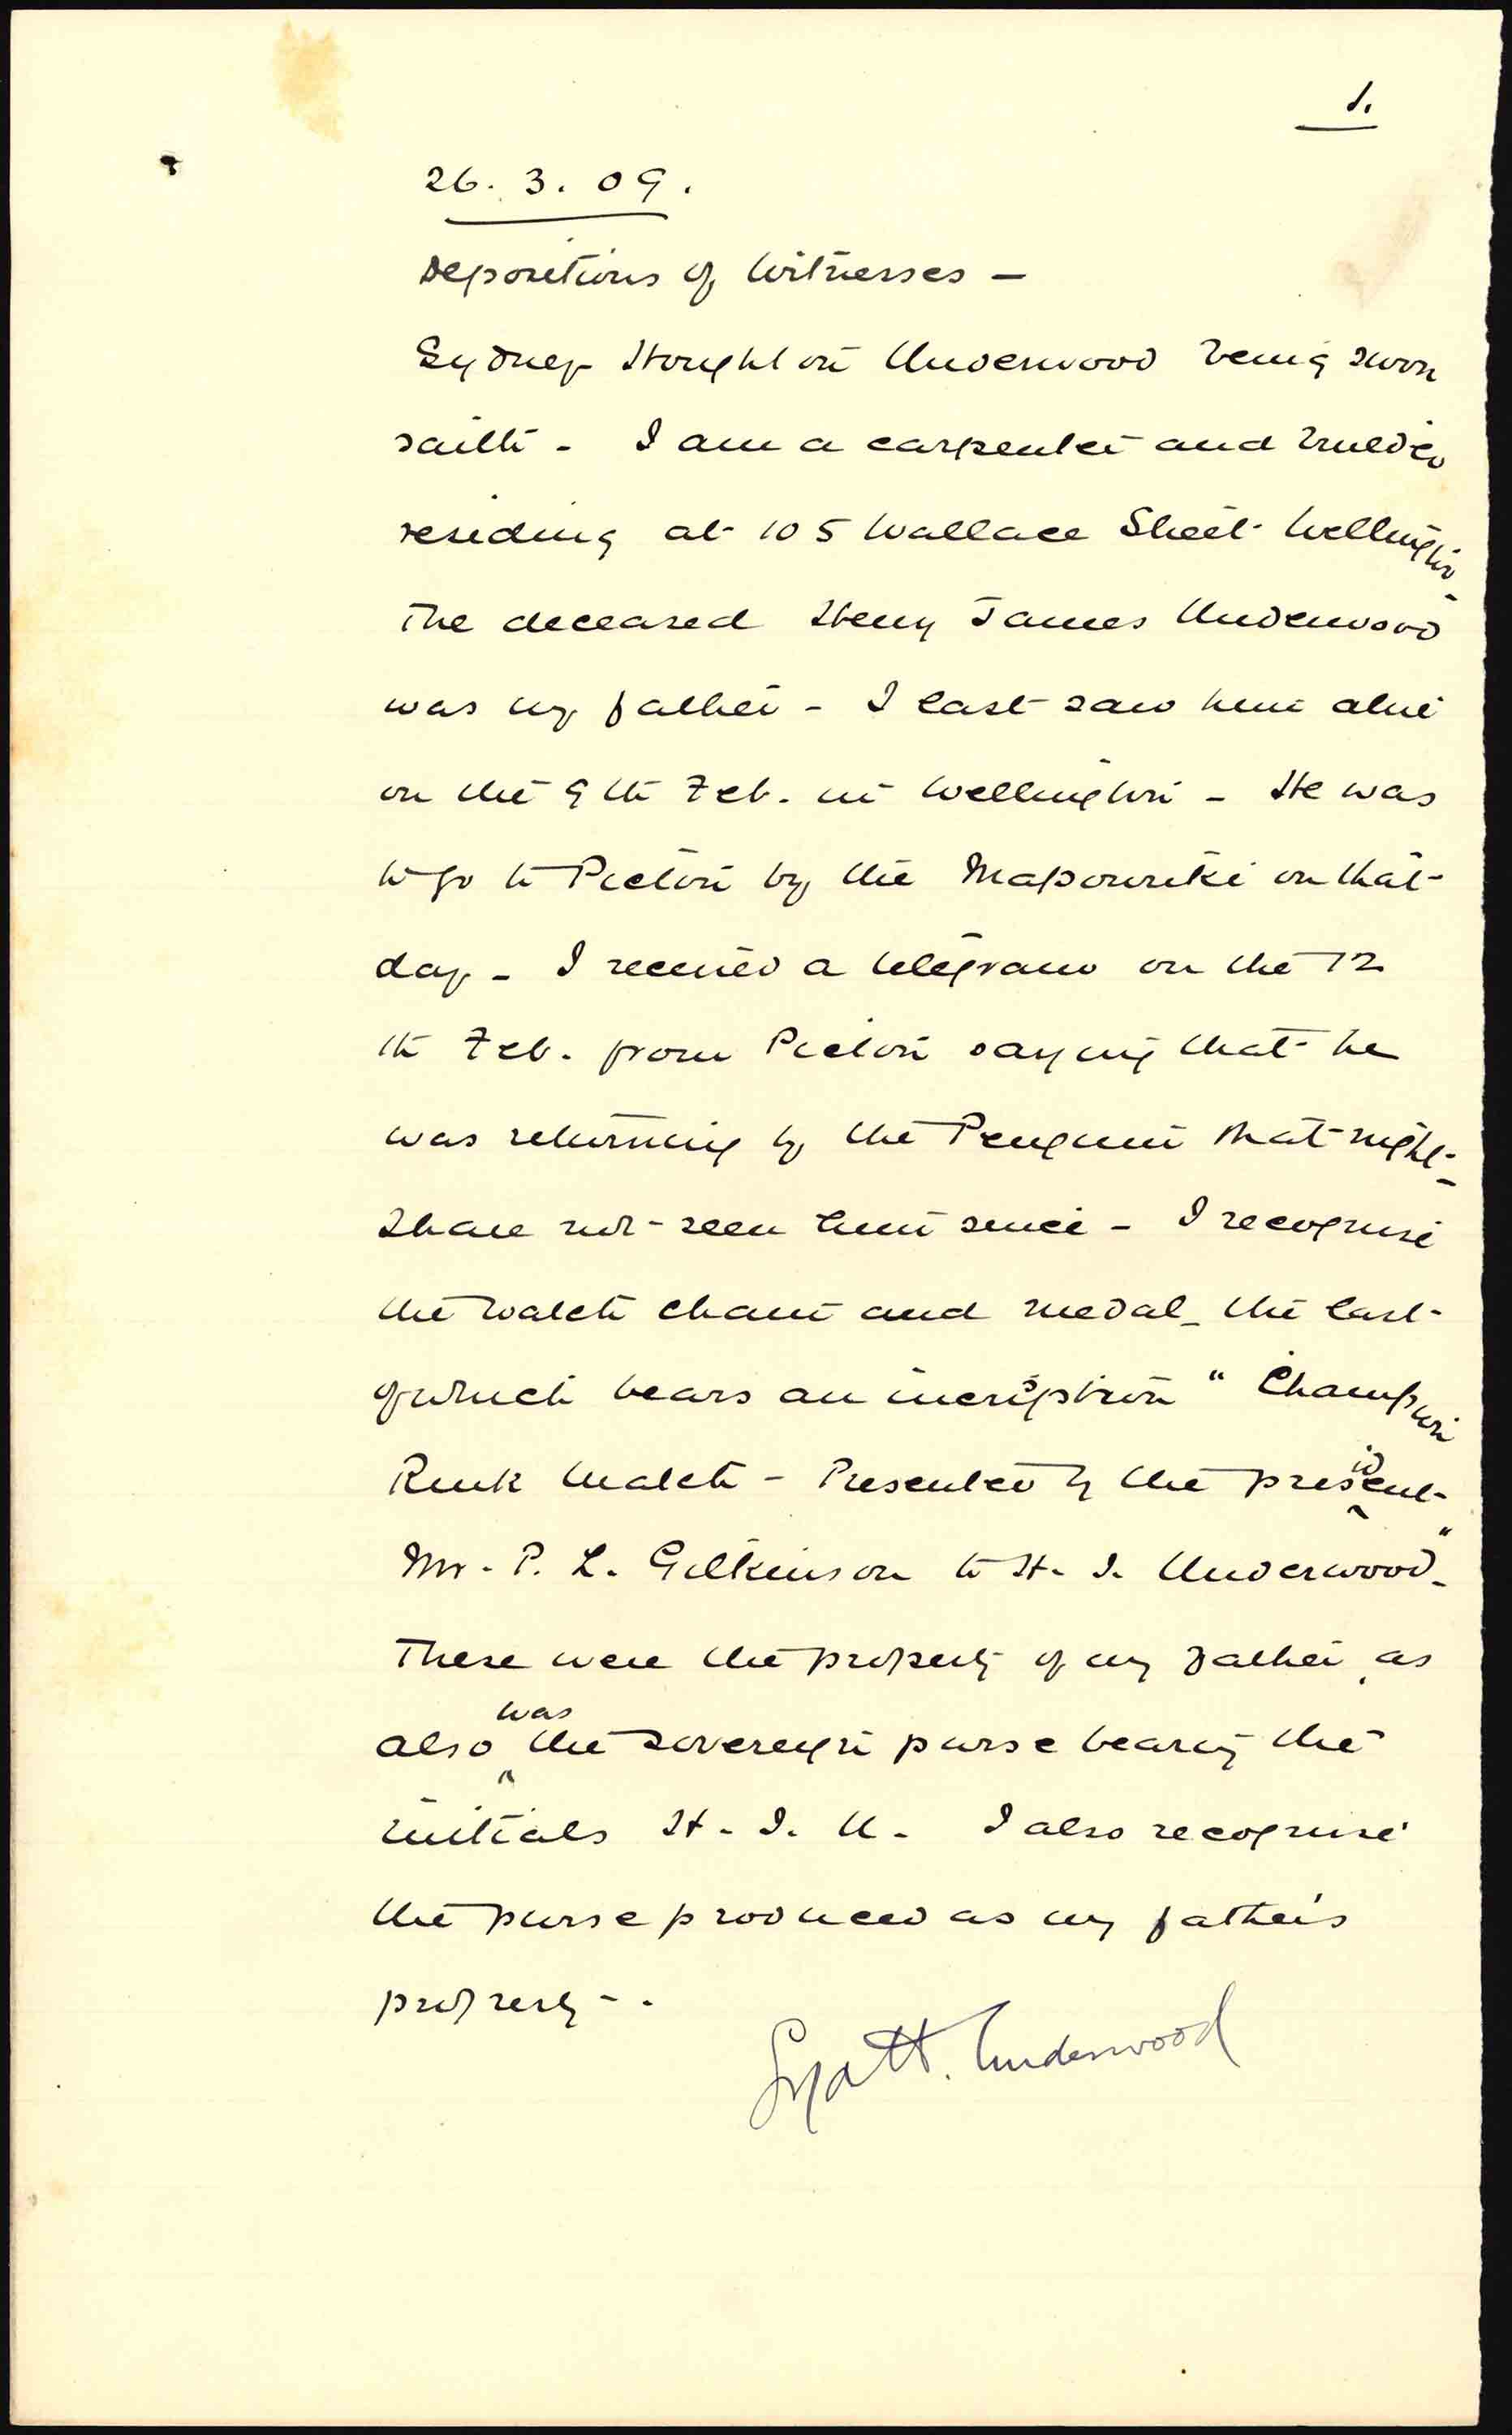 Deposition of witness for Henry James Underwood